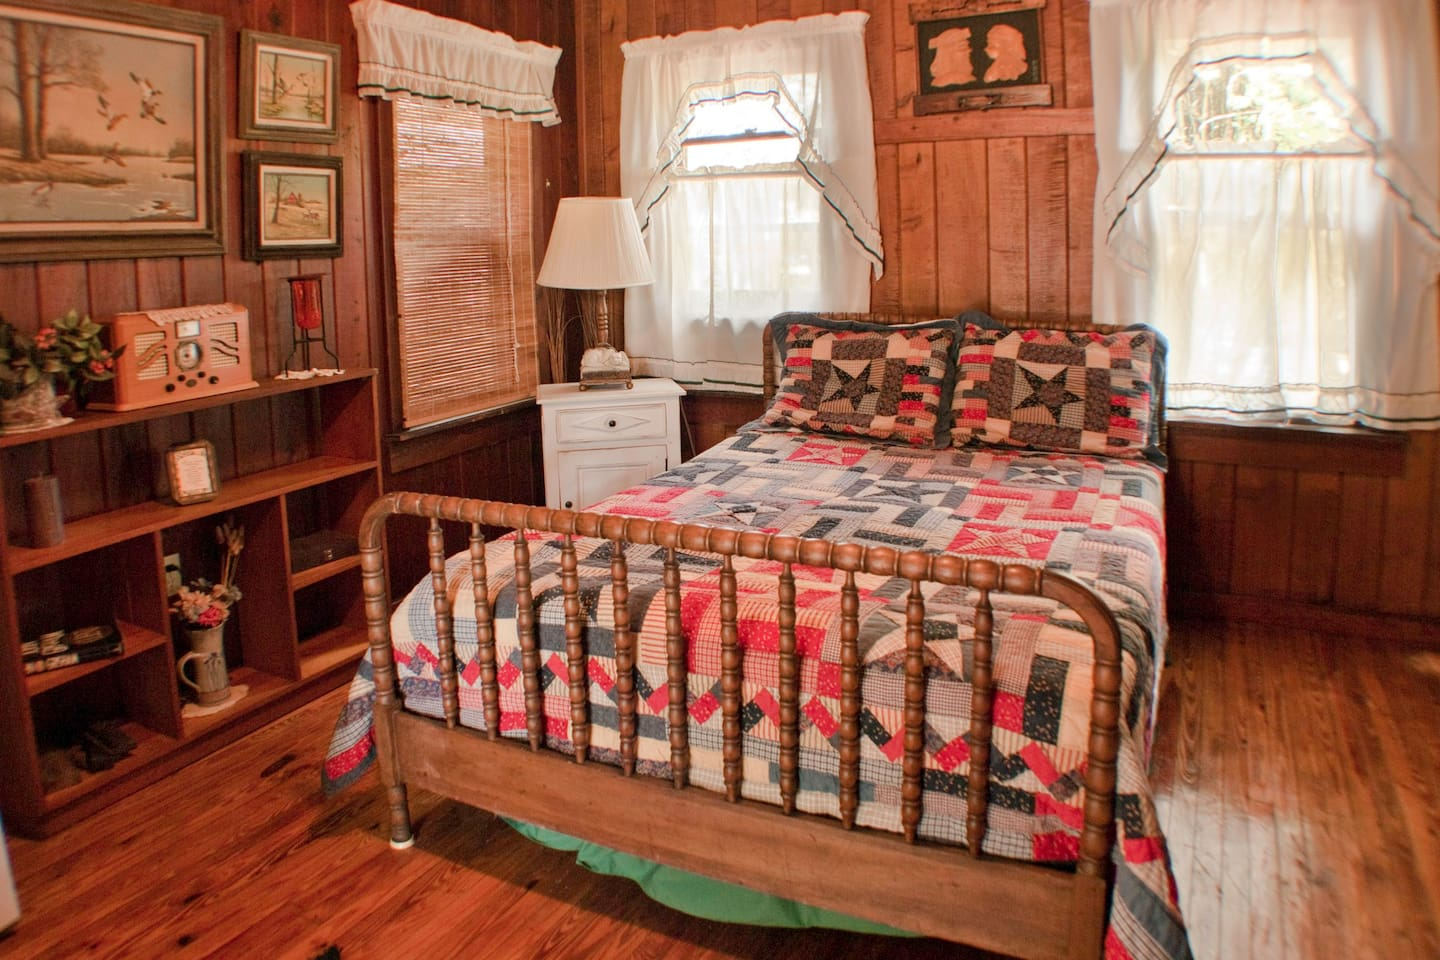 The comforts of a turn of the century cottage with updated features ....